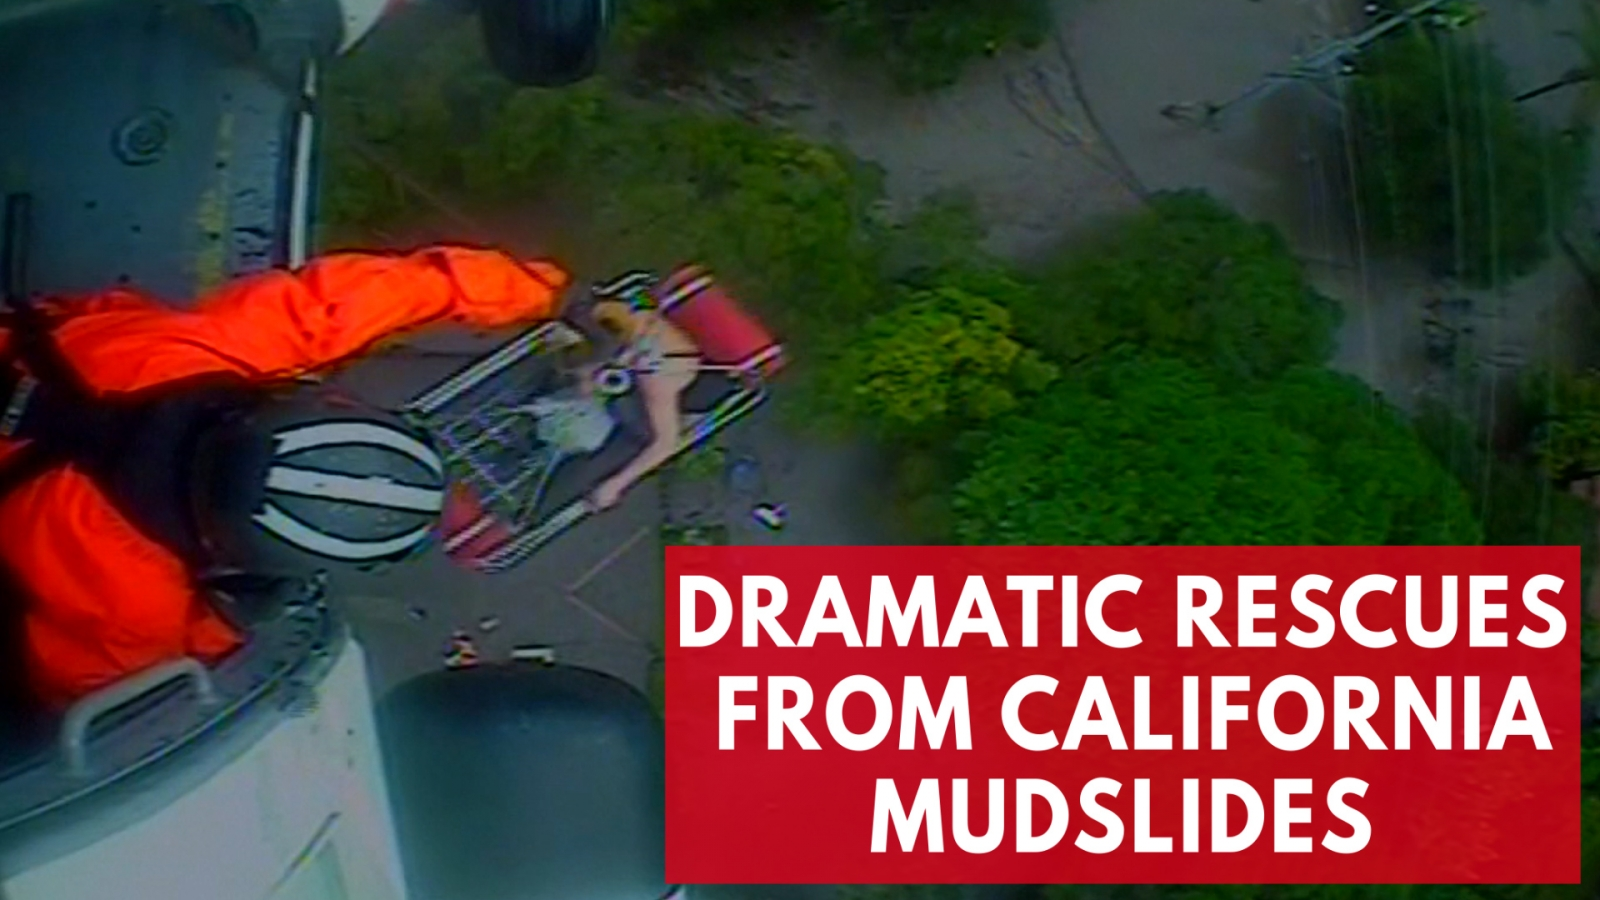 Dramatic rescues from California mudslides